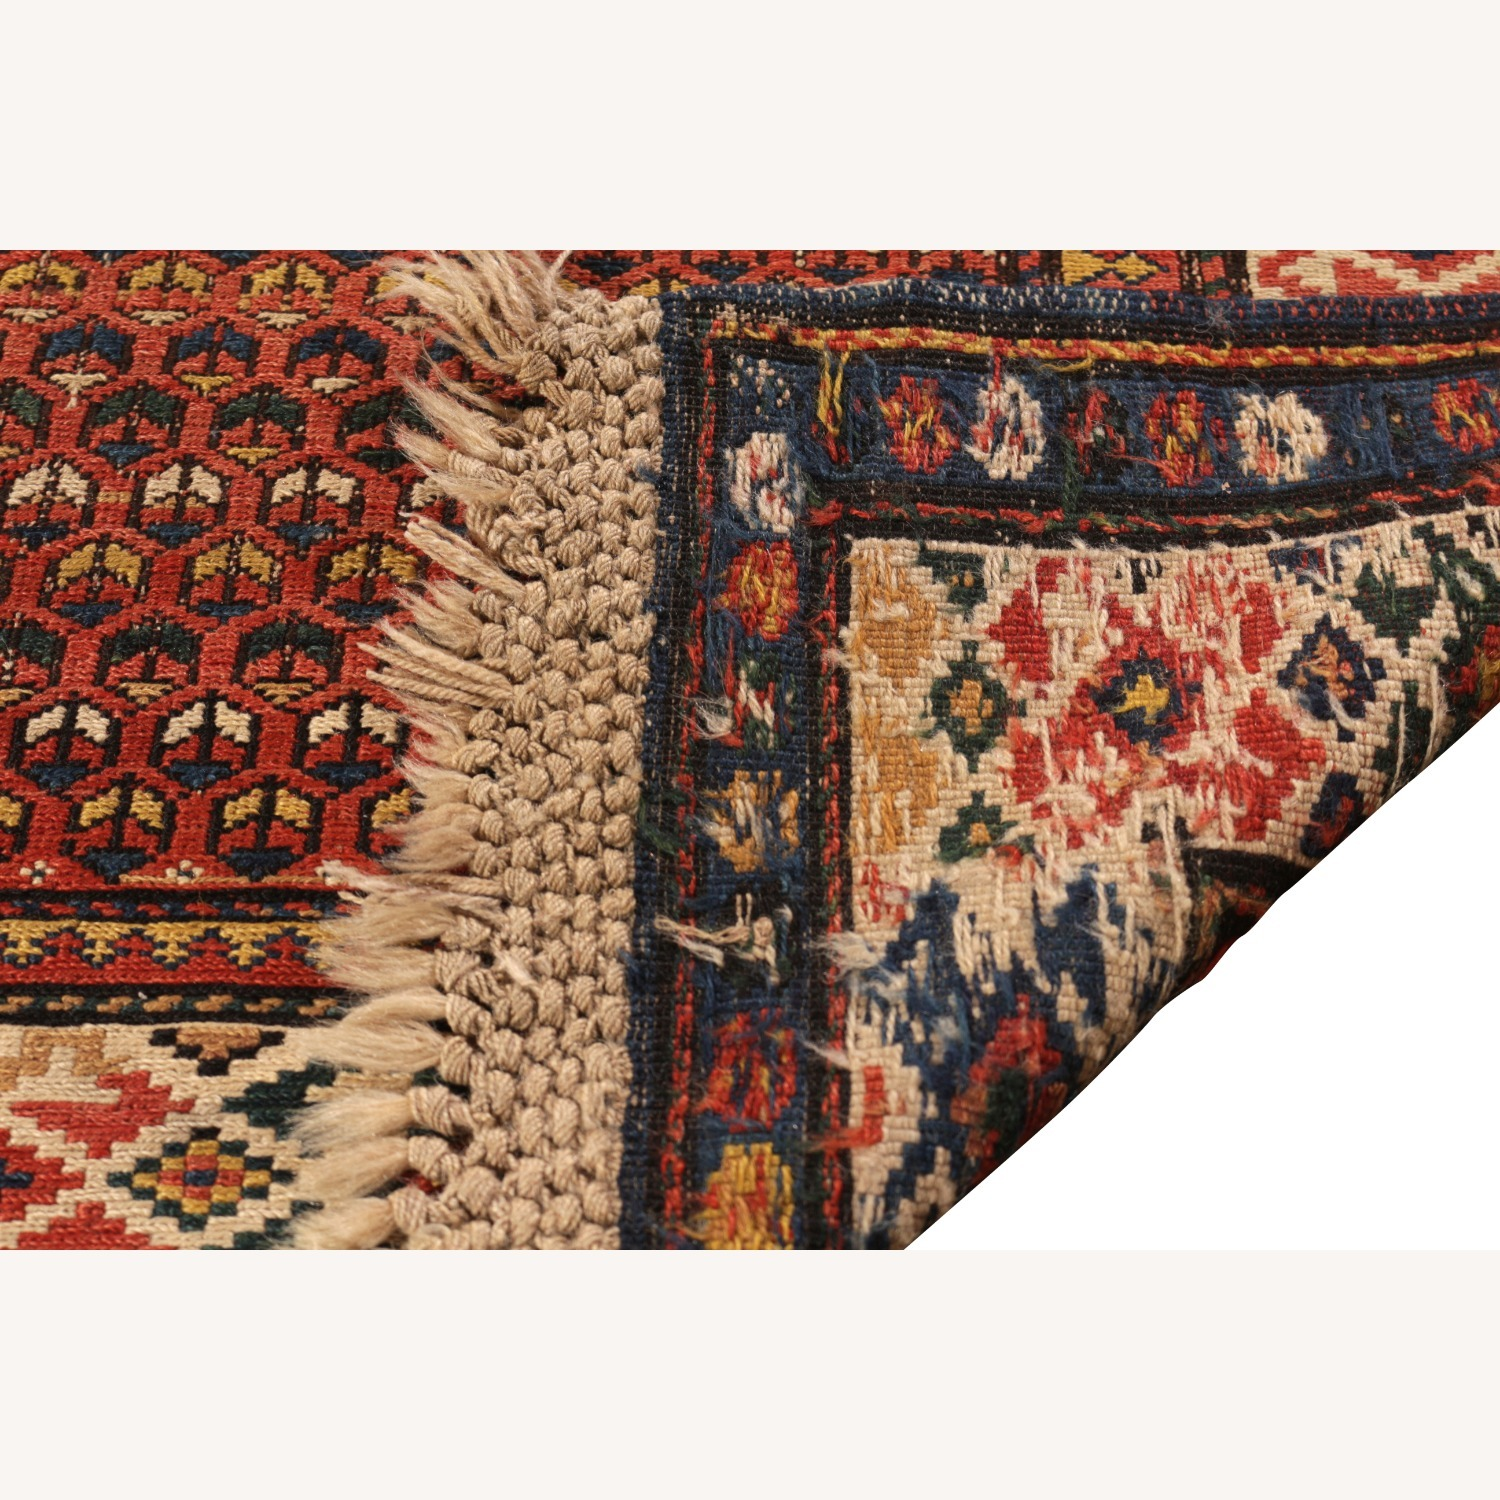 19th-Century Antique Soumak Rug - image-4